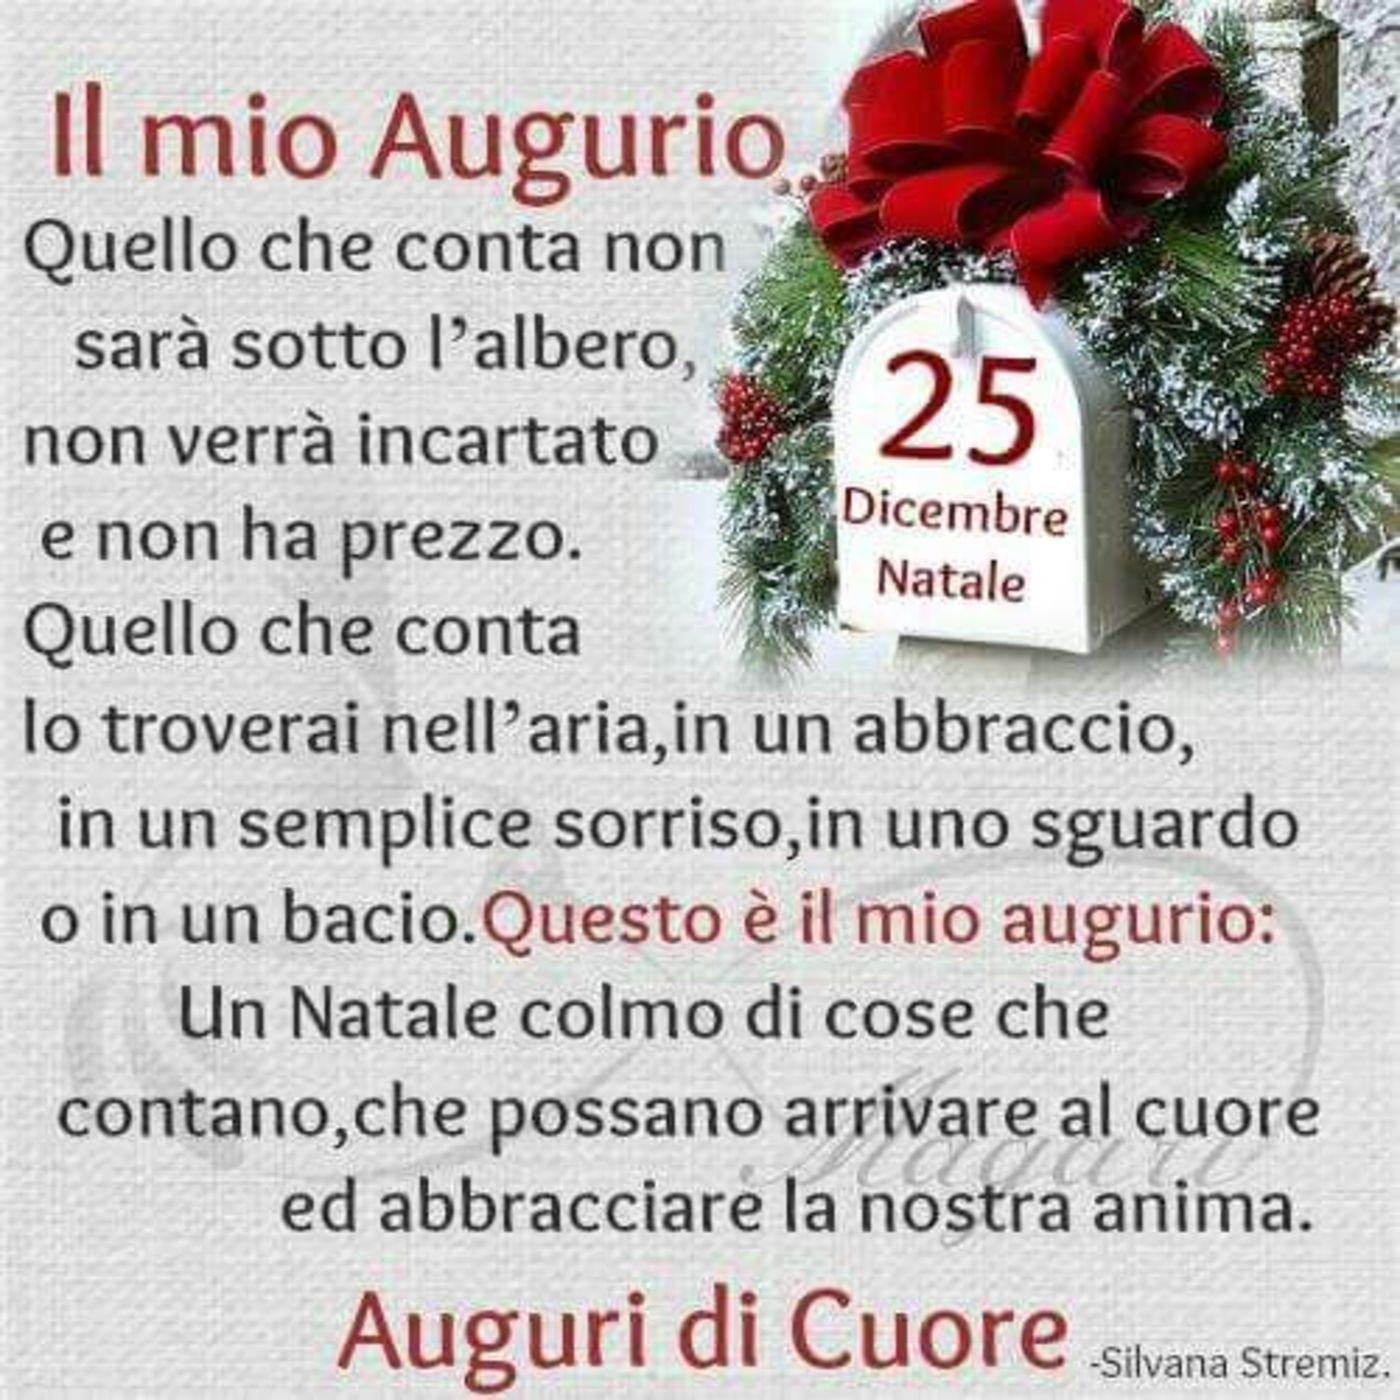 Buon Natale Quotes.25 Dicembre Buon Natale Holiday Mix Christmas Scenes Christmas Spirit